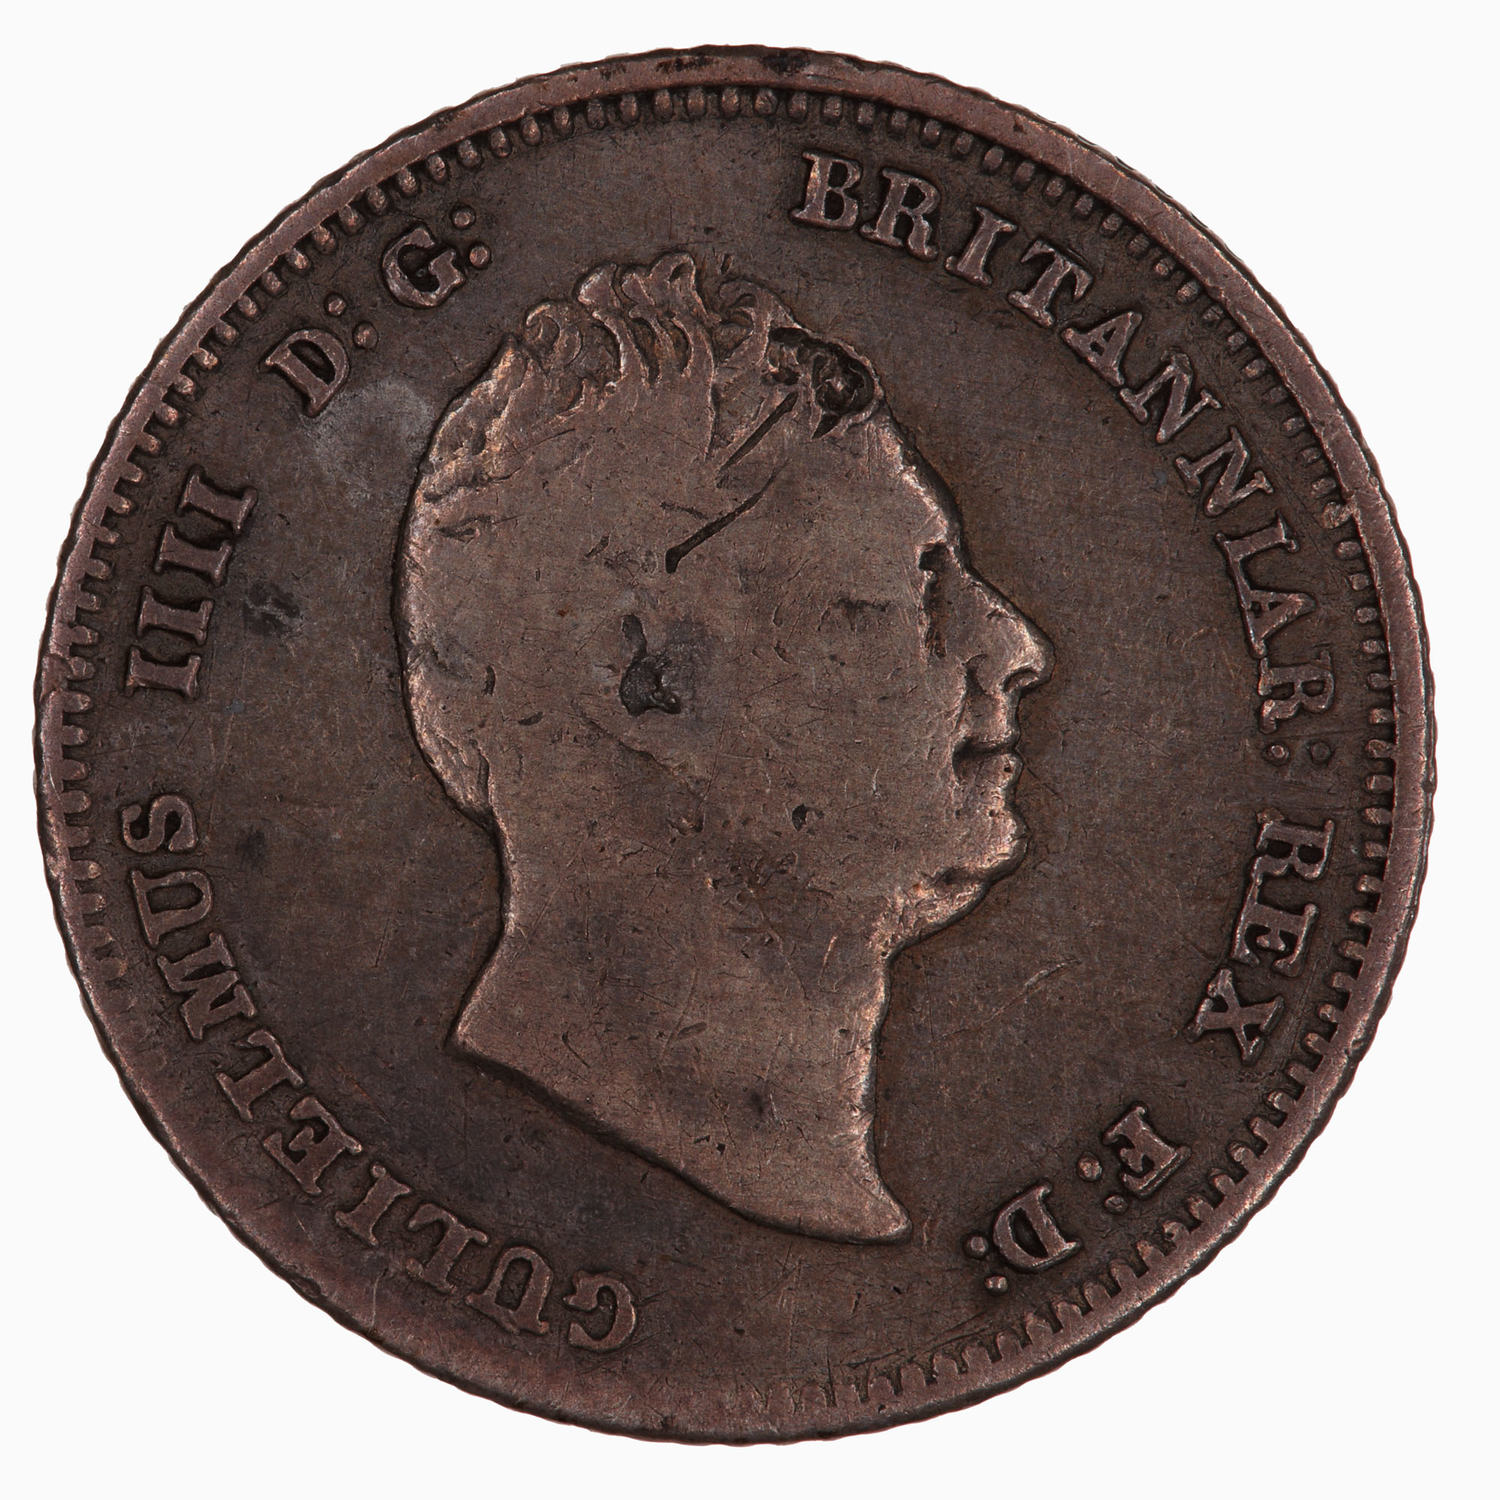 Fourpence 1837 (William IV): Photo Coin - Groat, William IV, Great Britain, 1837